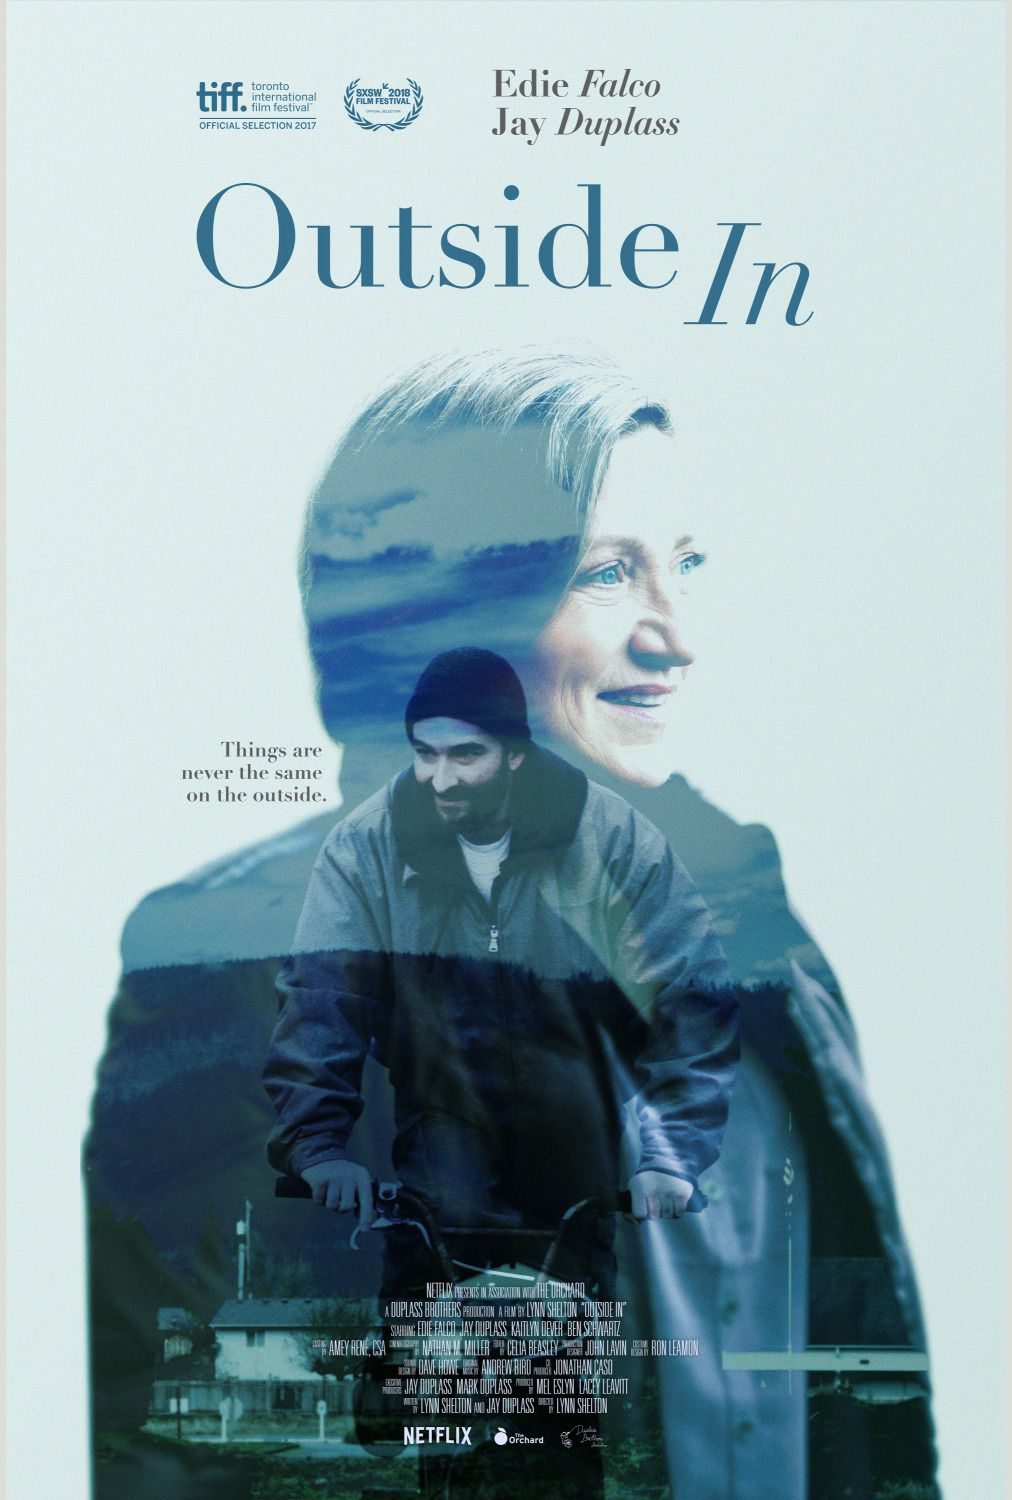 Outside In (2018) - film poster